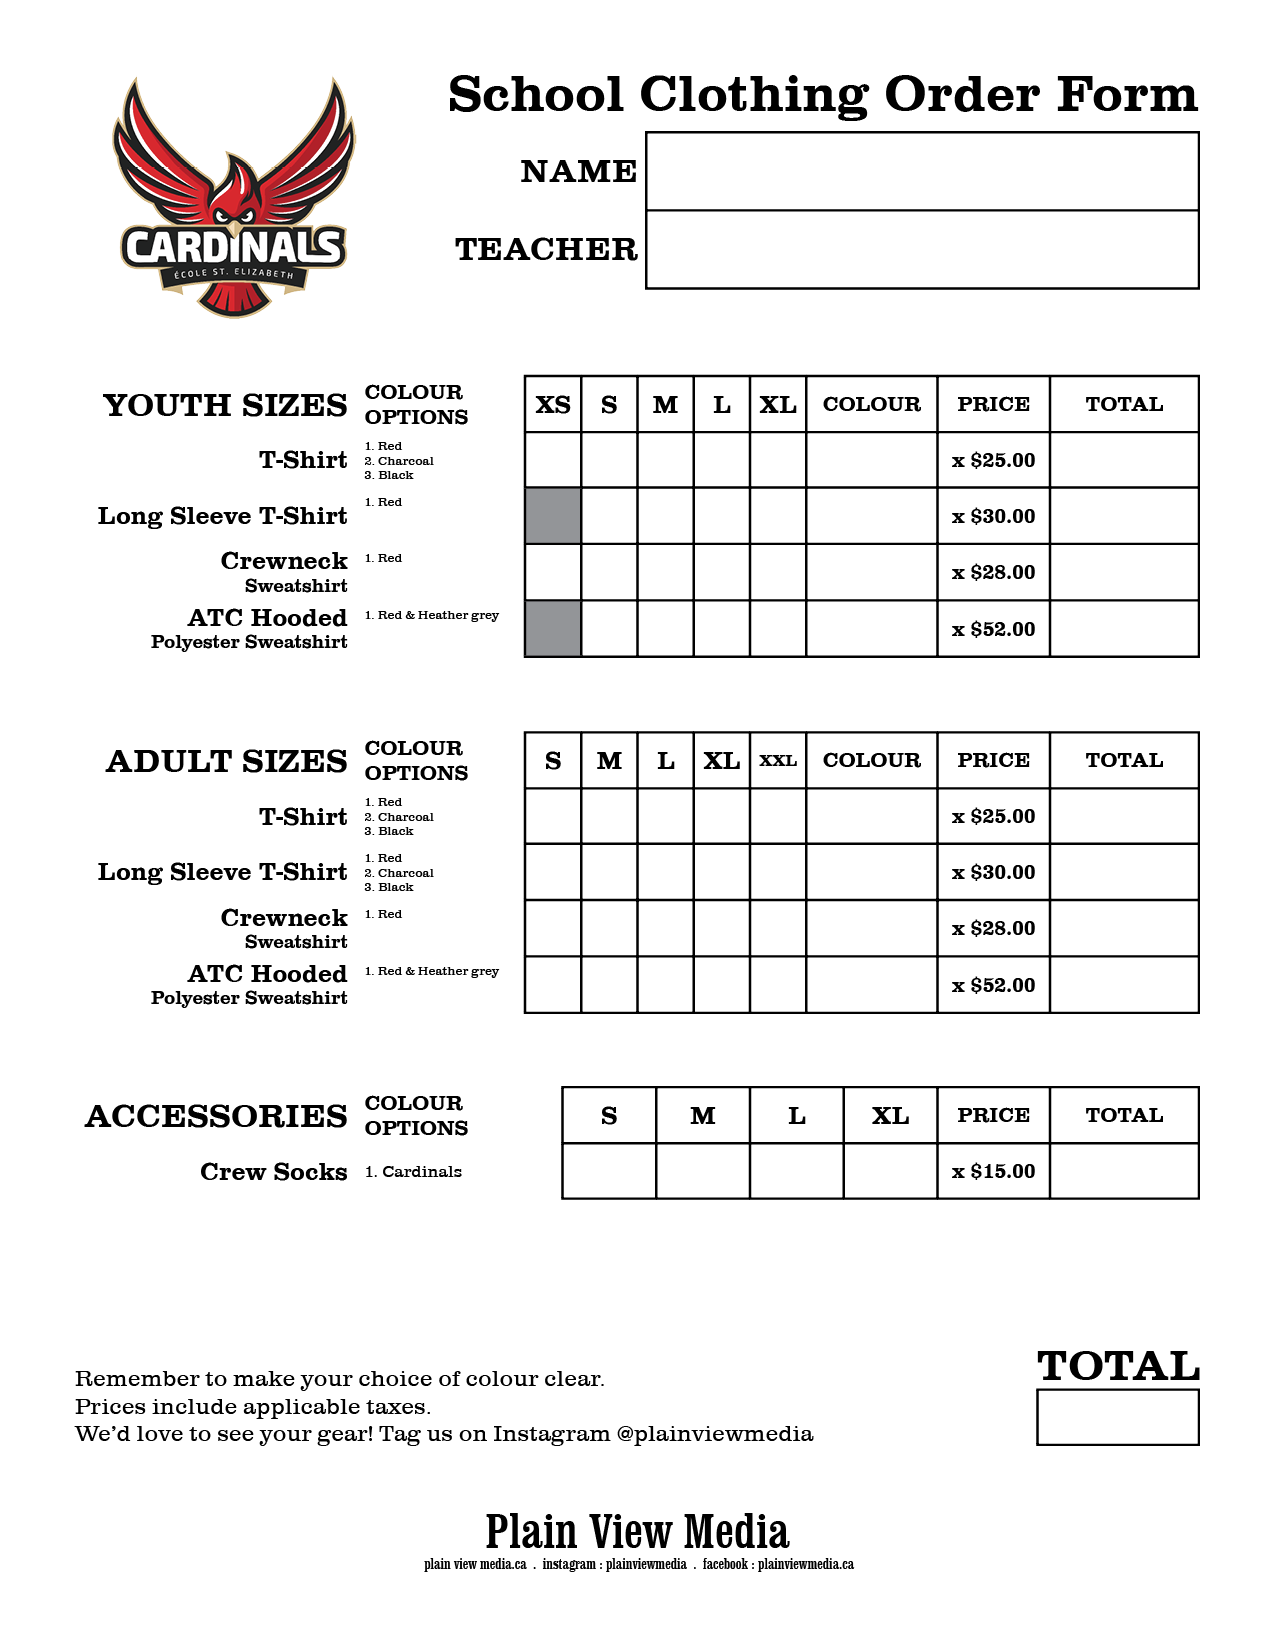 elizabeth_apparel_order_form_8x11_2019